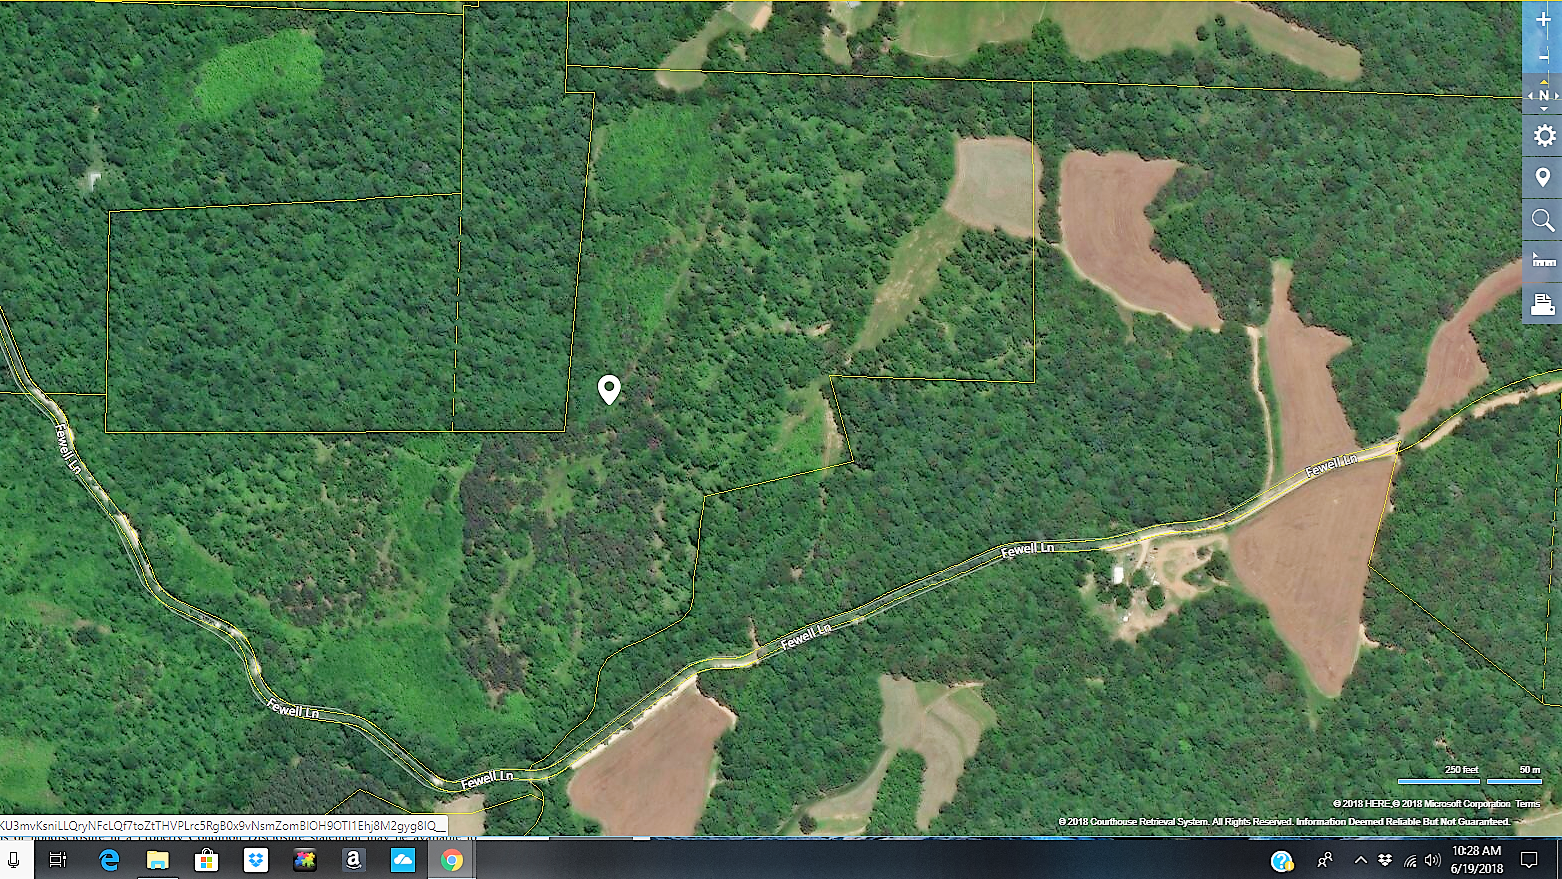 West Tn Hunting Land For Sale